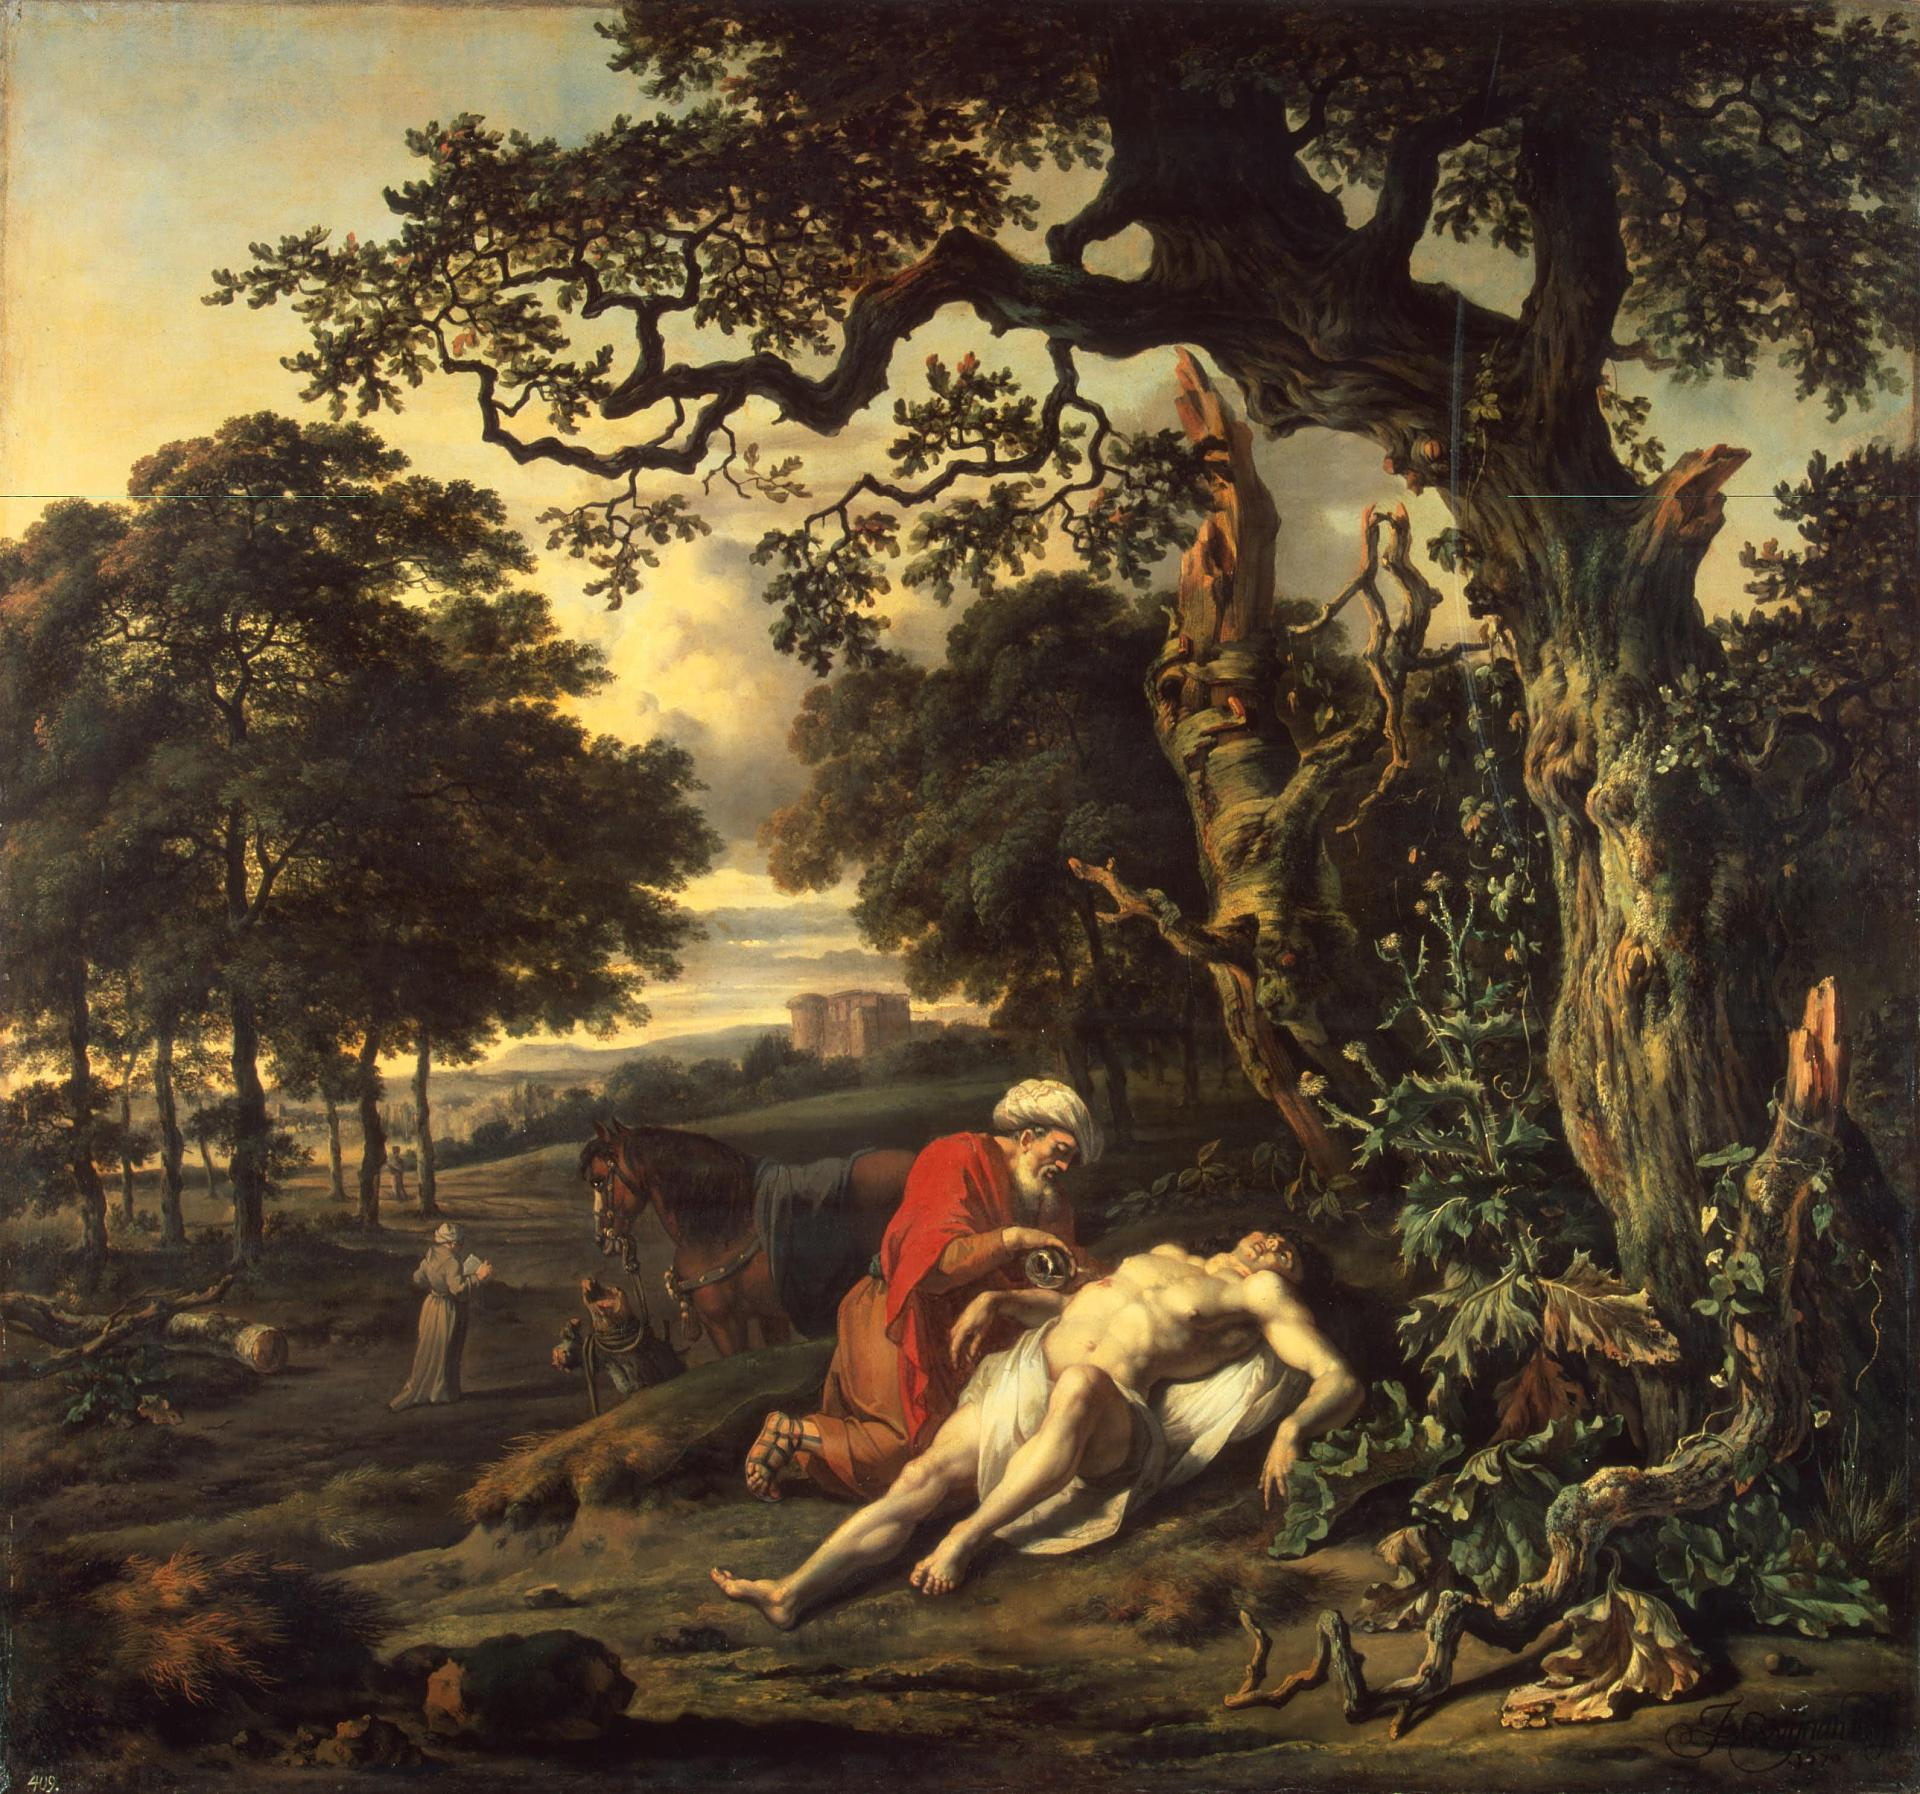 http://upload.wikimedia.org/wikipedia/commons/f/f2/Jan_Wijnants_-_Parable_of_the_Good_Samaritan.jpg